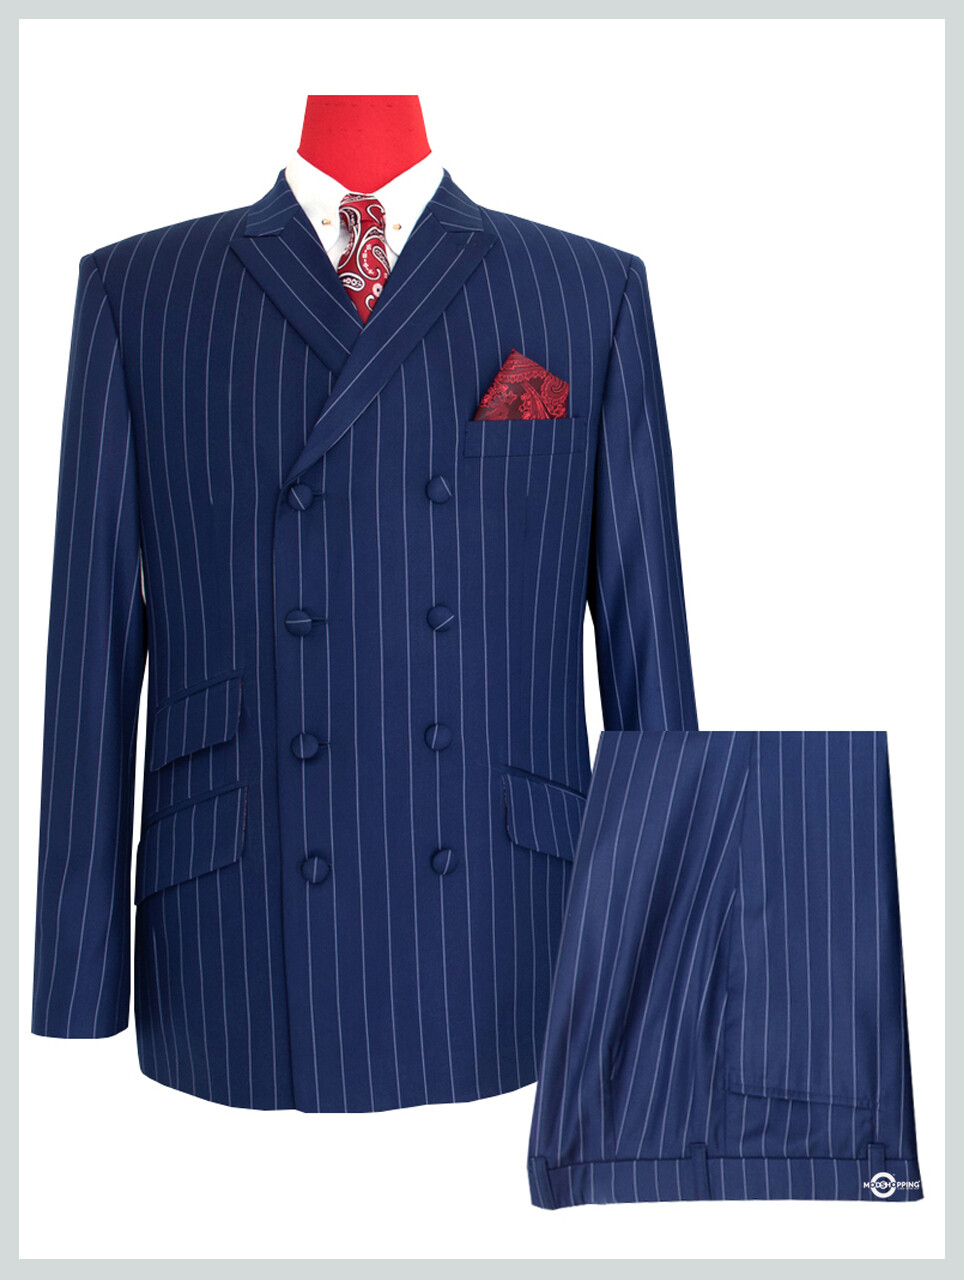 Double Breasted Suit | Navy Blue Striped Suit